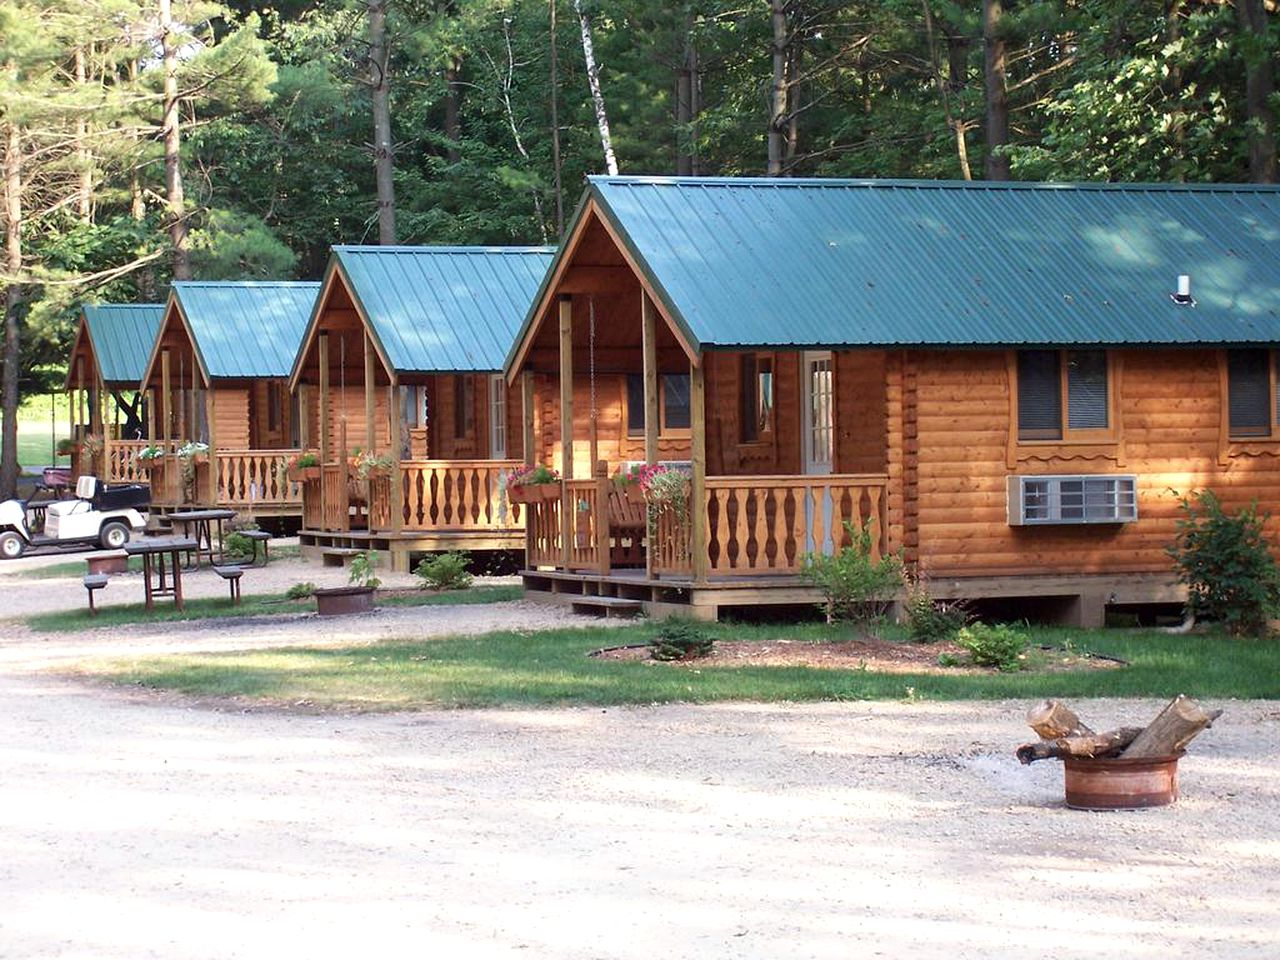 Cabins (Baraboo, Wisconsin, United States)